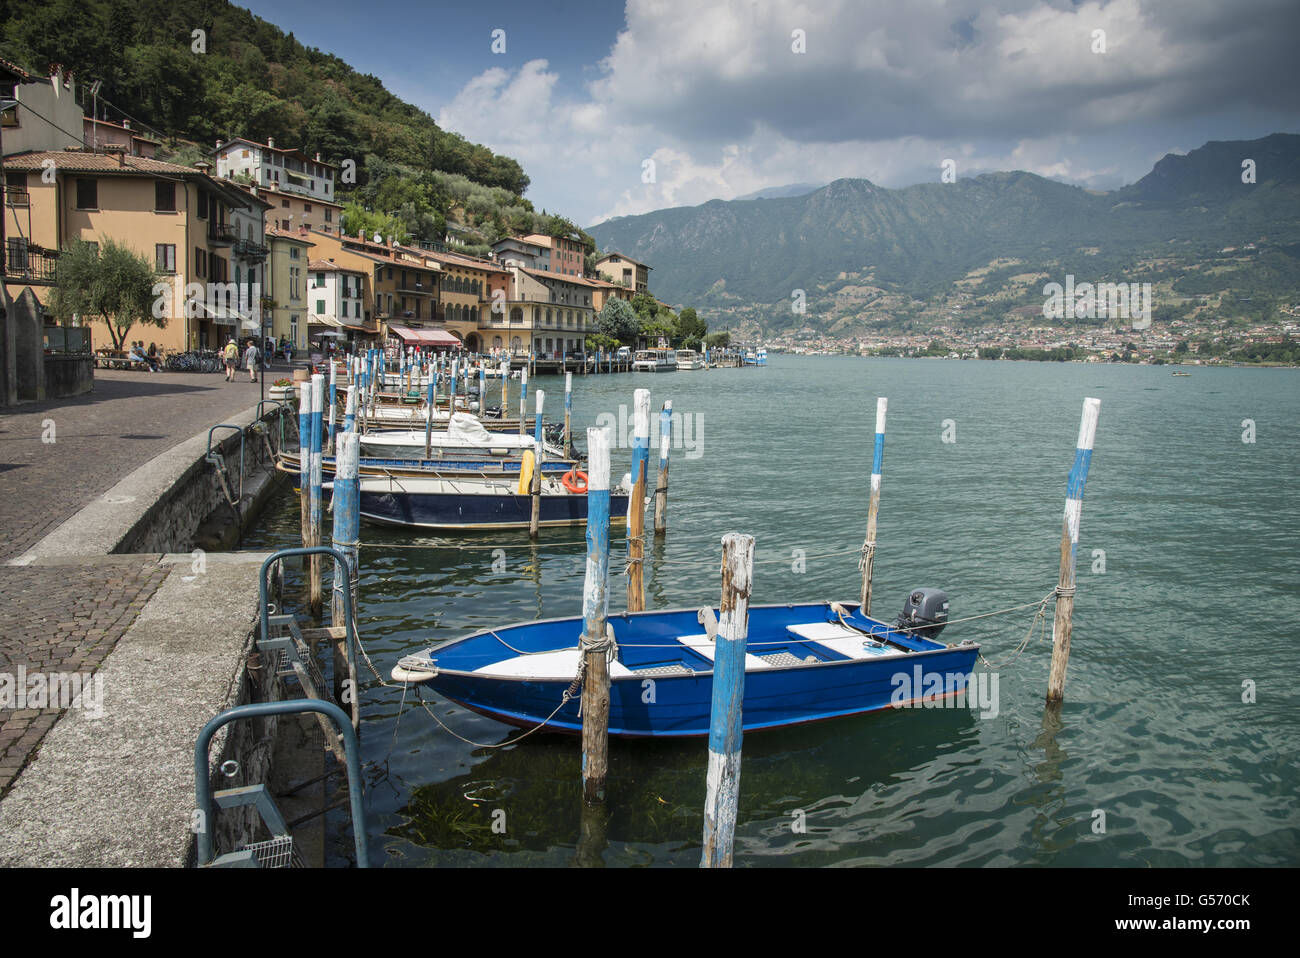 Boat moorings at town on lake island, Peschiera Maraglio, Monte Isola, Lago d'Iseo, Val Camonica, Central Alps, - Stock Image